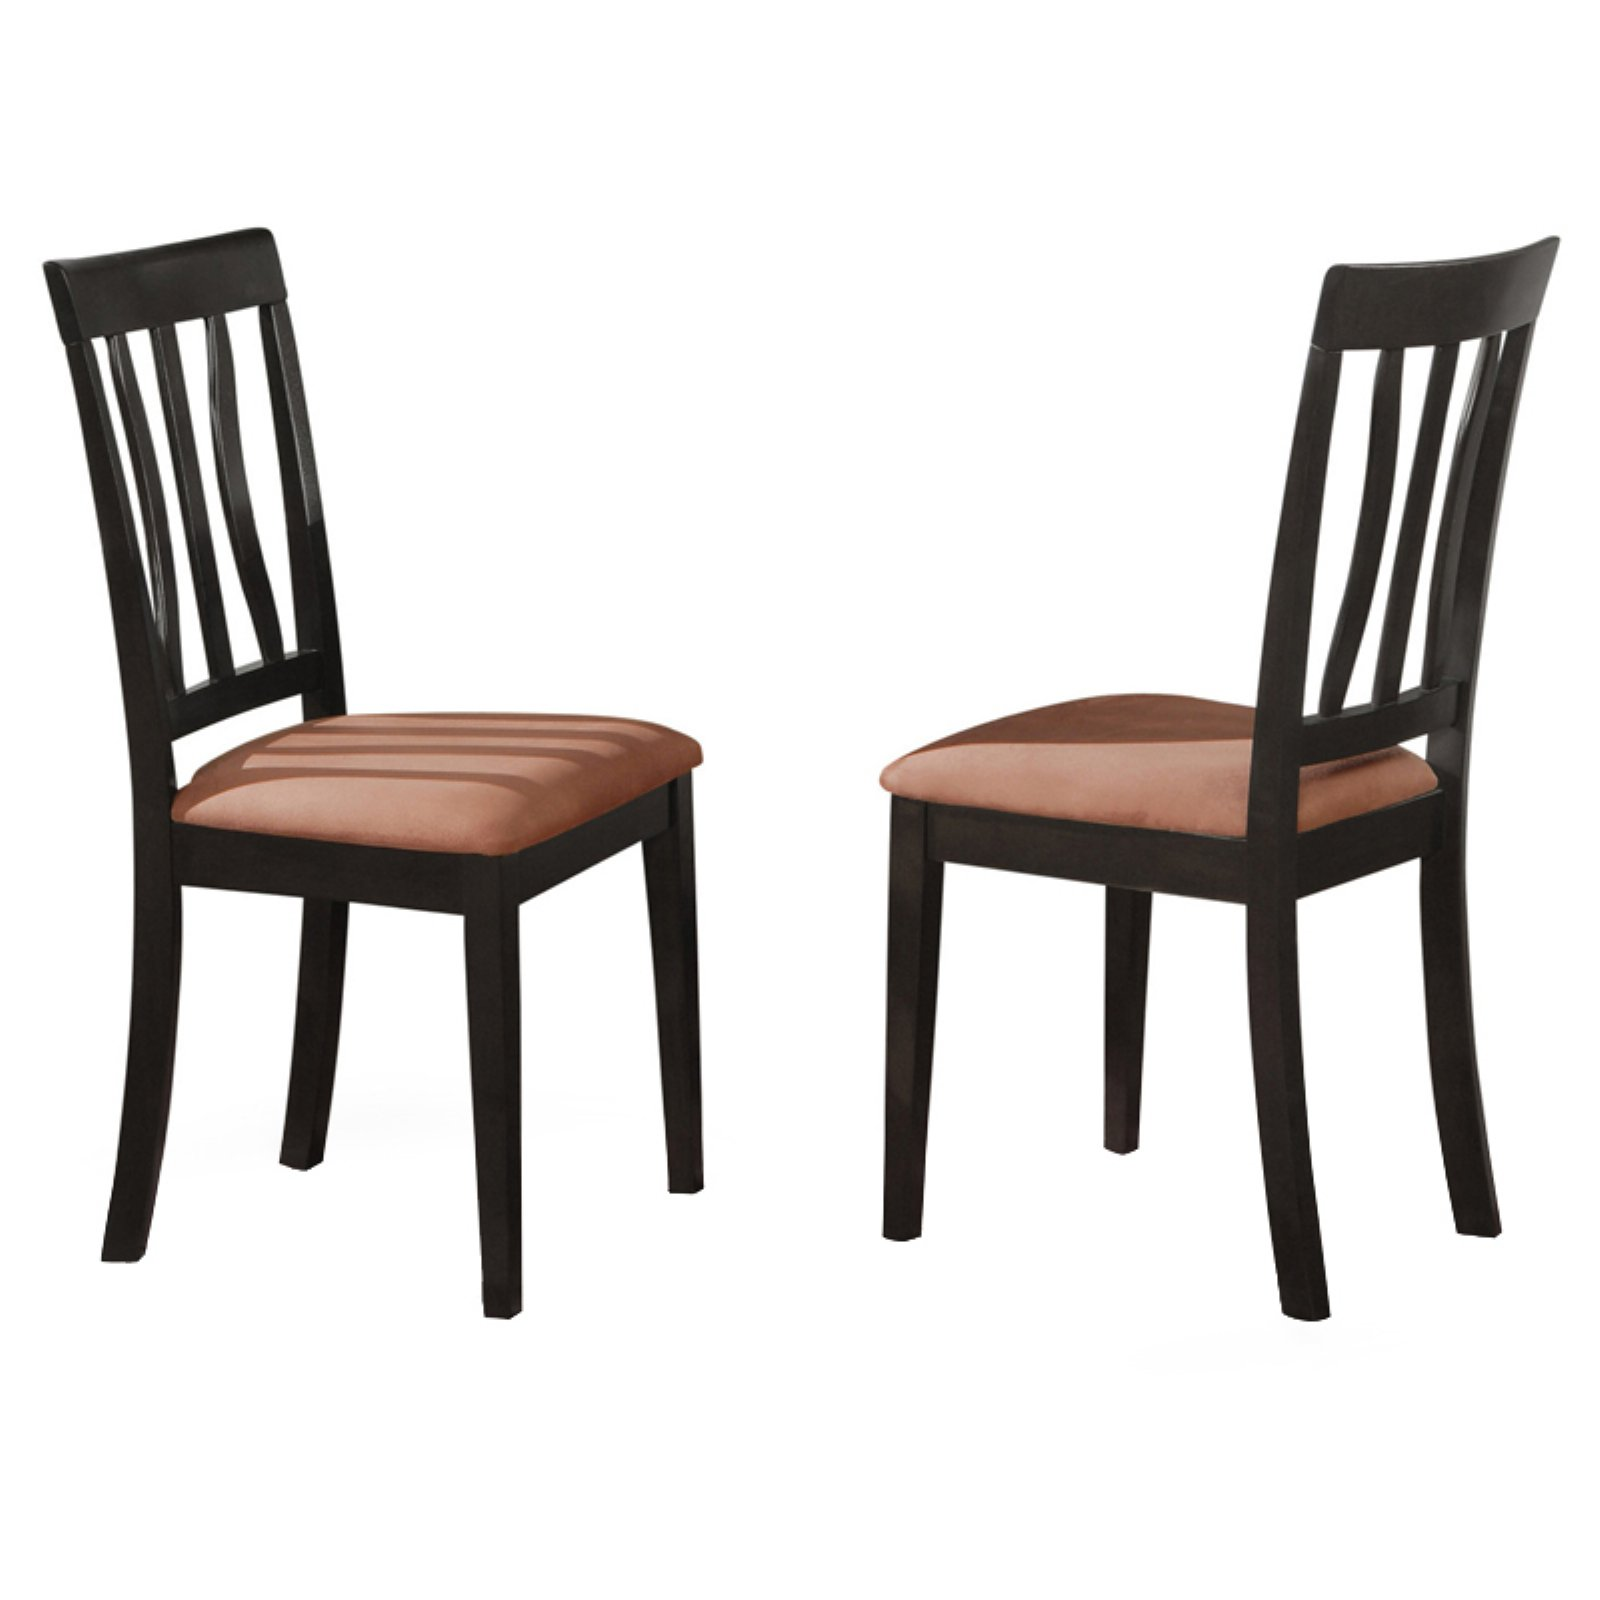 East West Furniture Antique Dining Chair with Microfiber Seat - Set of 2